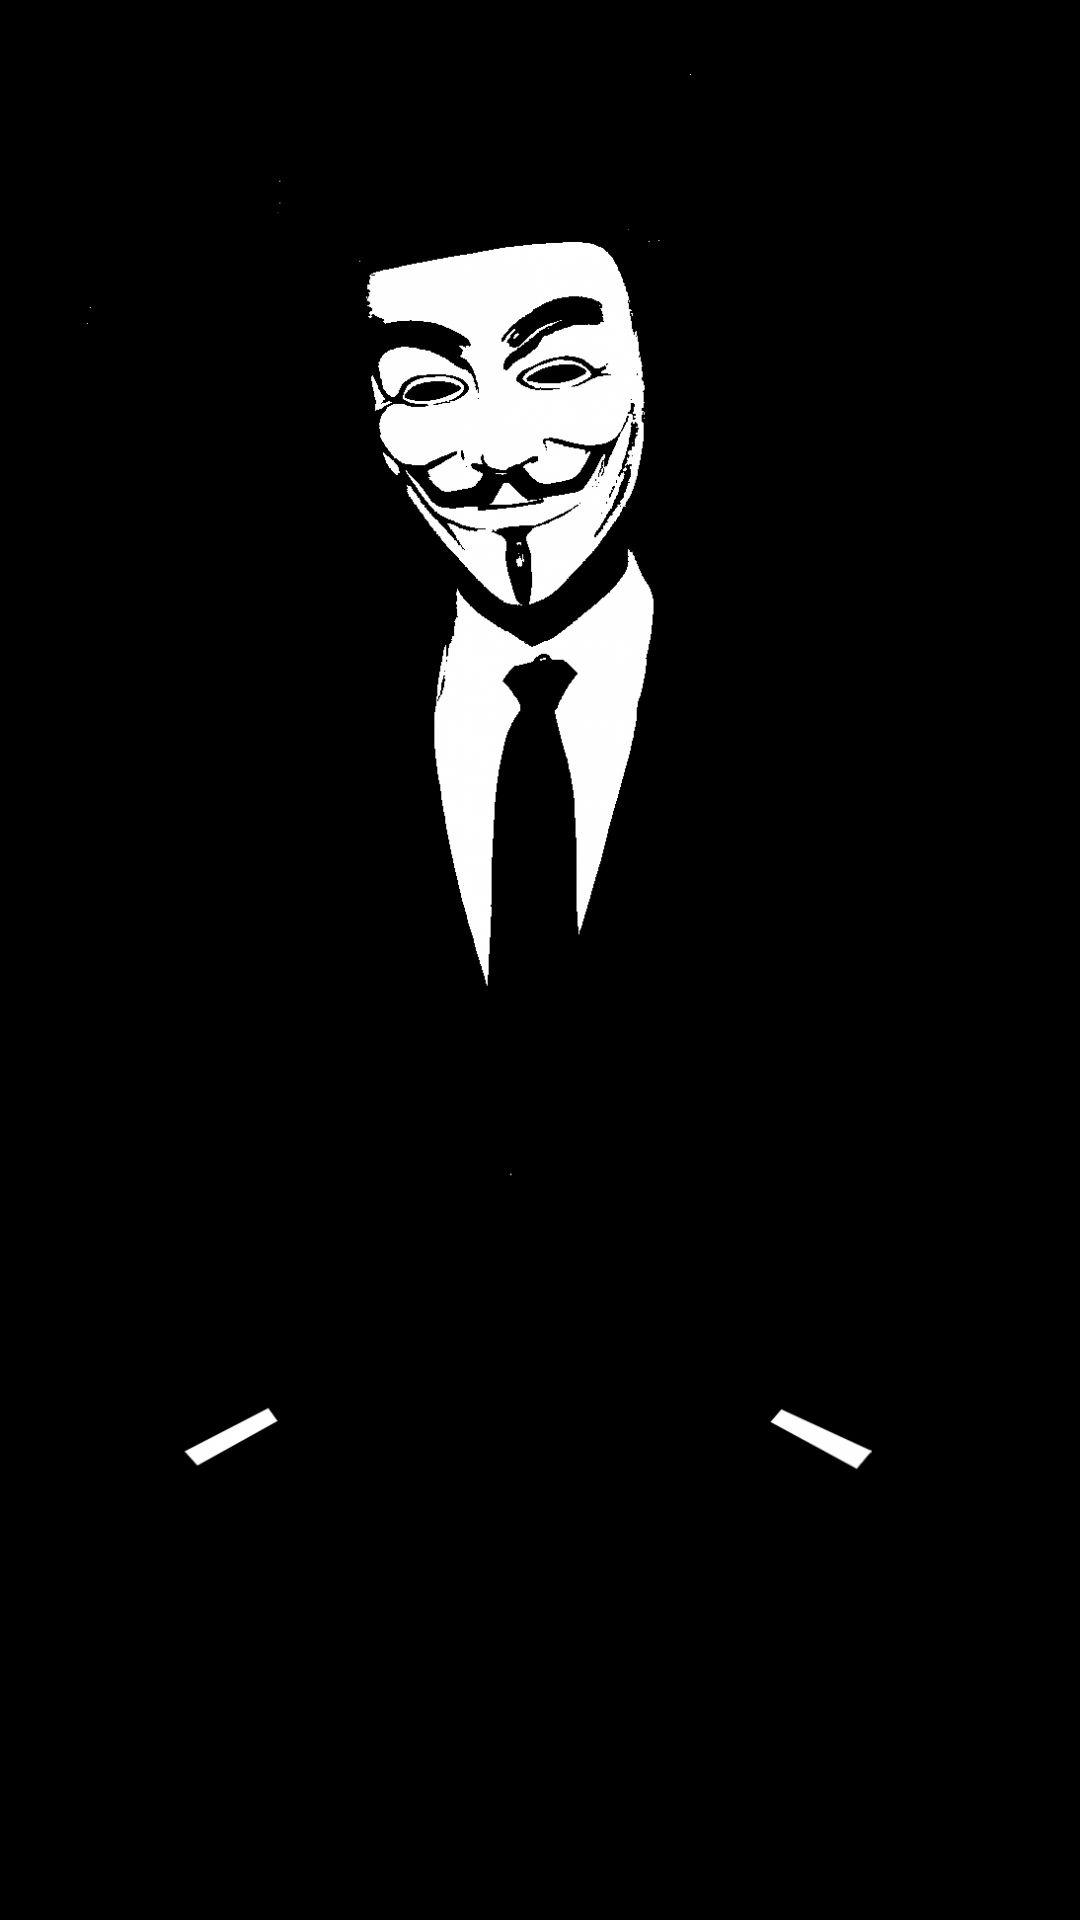 V For Vendetta Quotes Phone Wallpaper We Have The Best Collection Of Anonymous Wallpaper Hd For